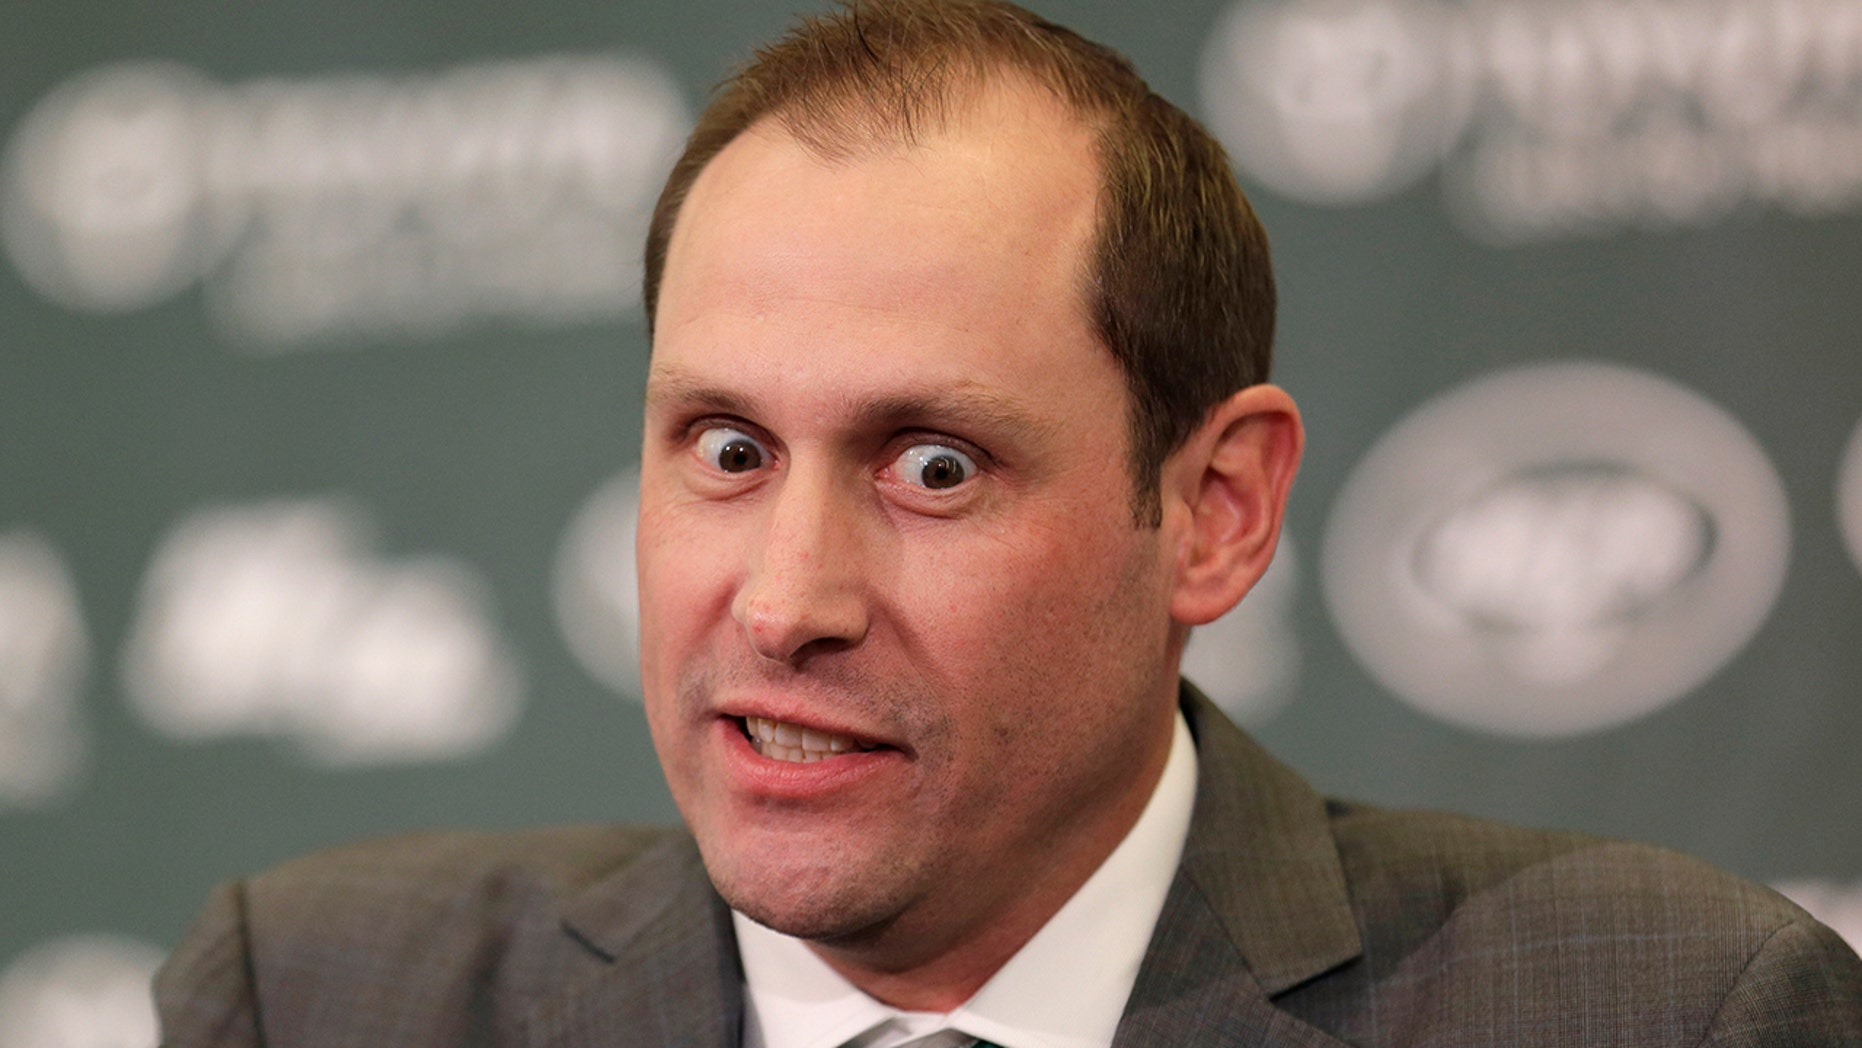 New York Jets head coach Adam Gase speaks during a news conference in Florham Park, N.J., Monday, Jan. 14, 2019.